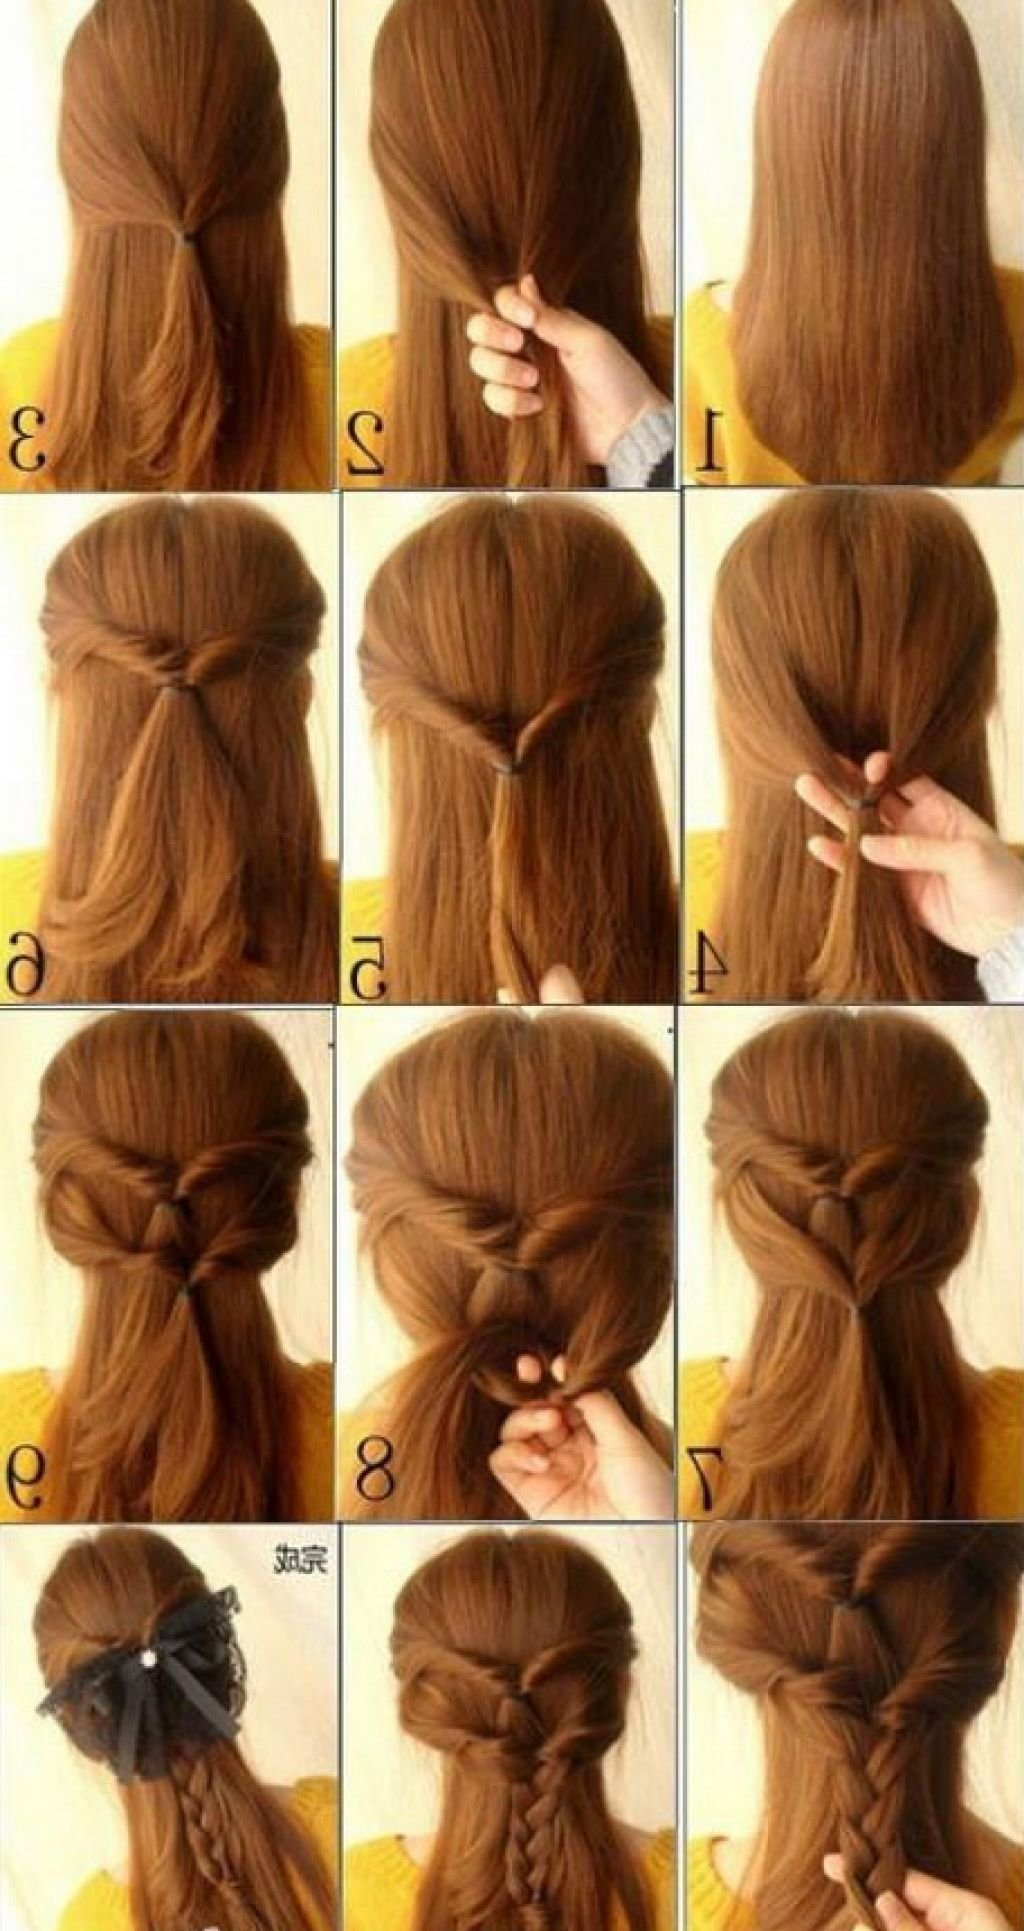 10 Elegant Cool Hair Ideas For Long Hair easy to do hairstyles for long hair best wedding updo ideas on 2021